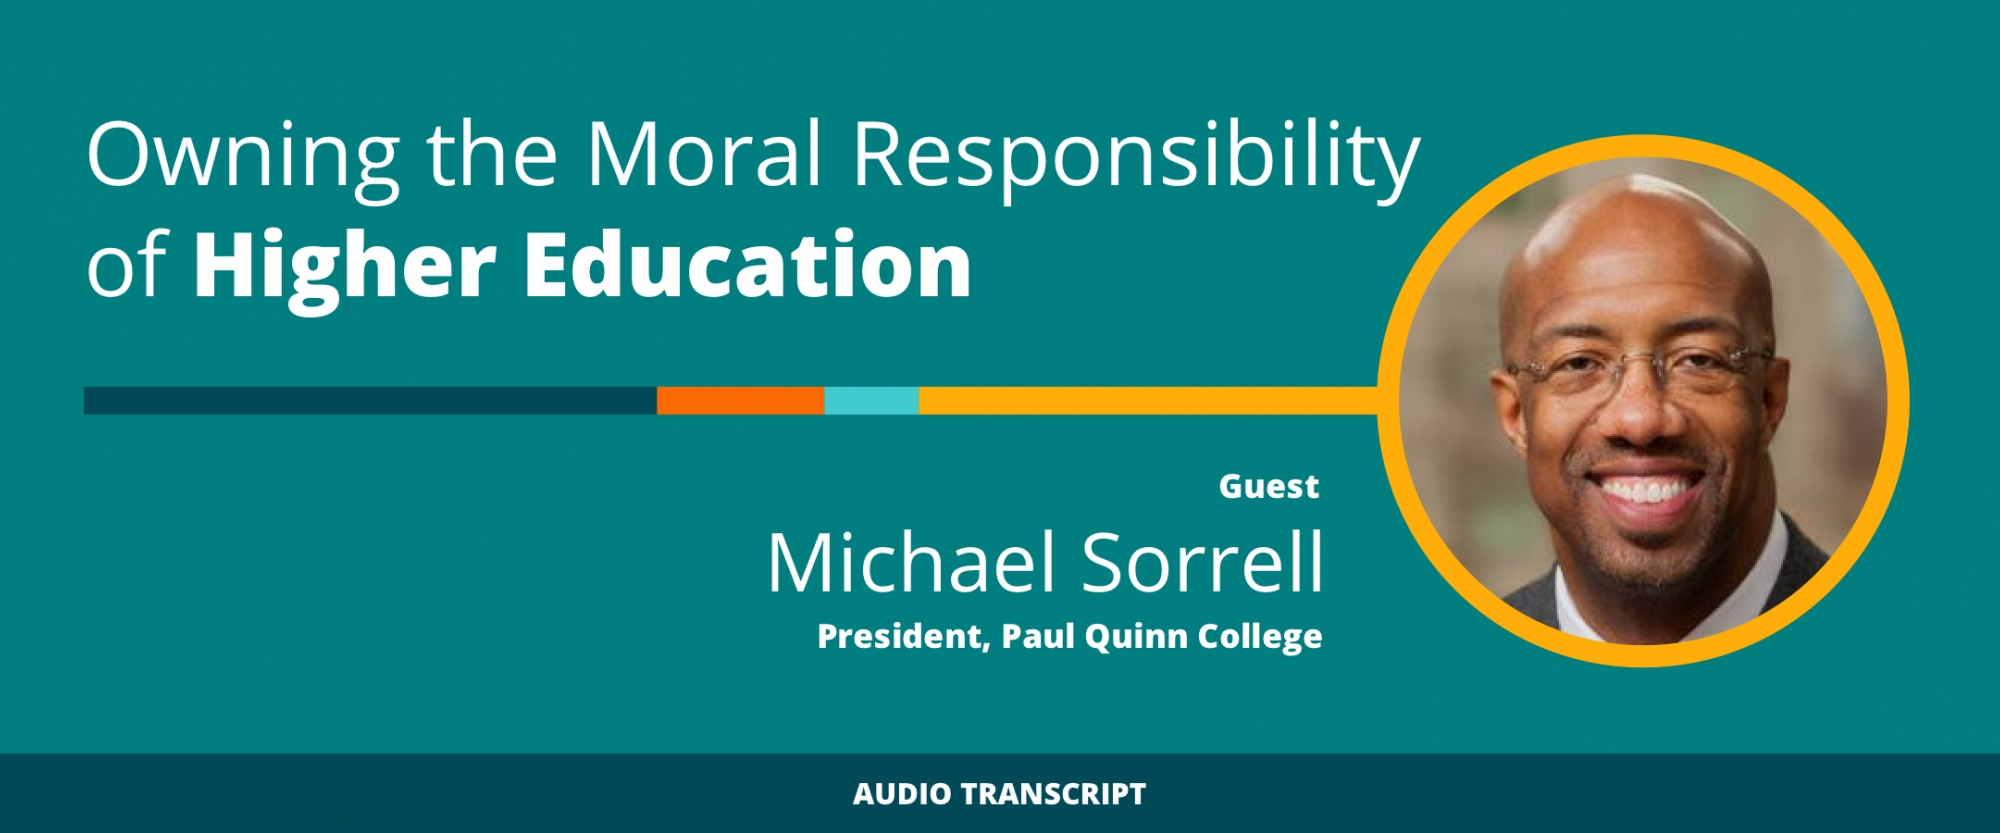 Weekly Wisdom 2/22/21: Transcript of Conversation With Michael Sorrell, Paul Quinn College President